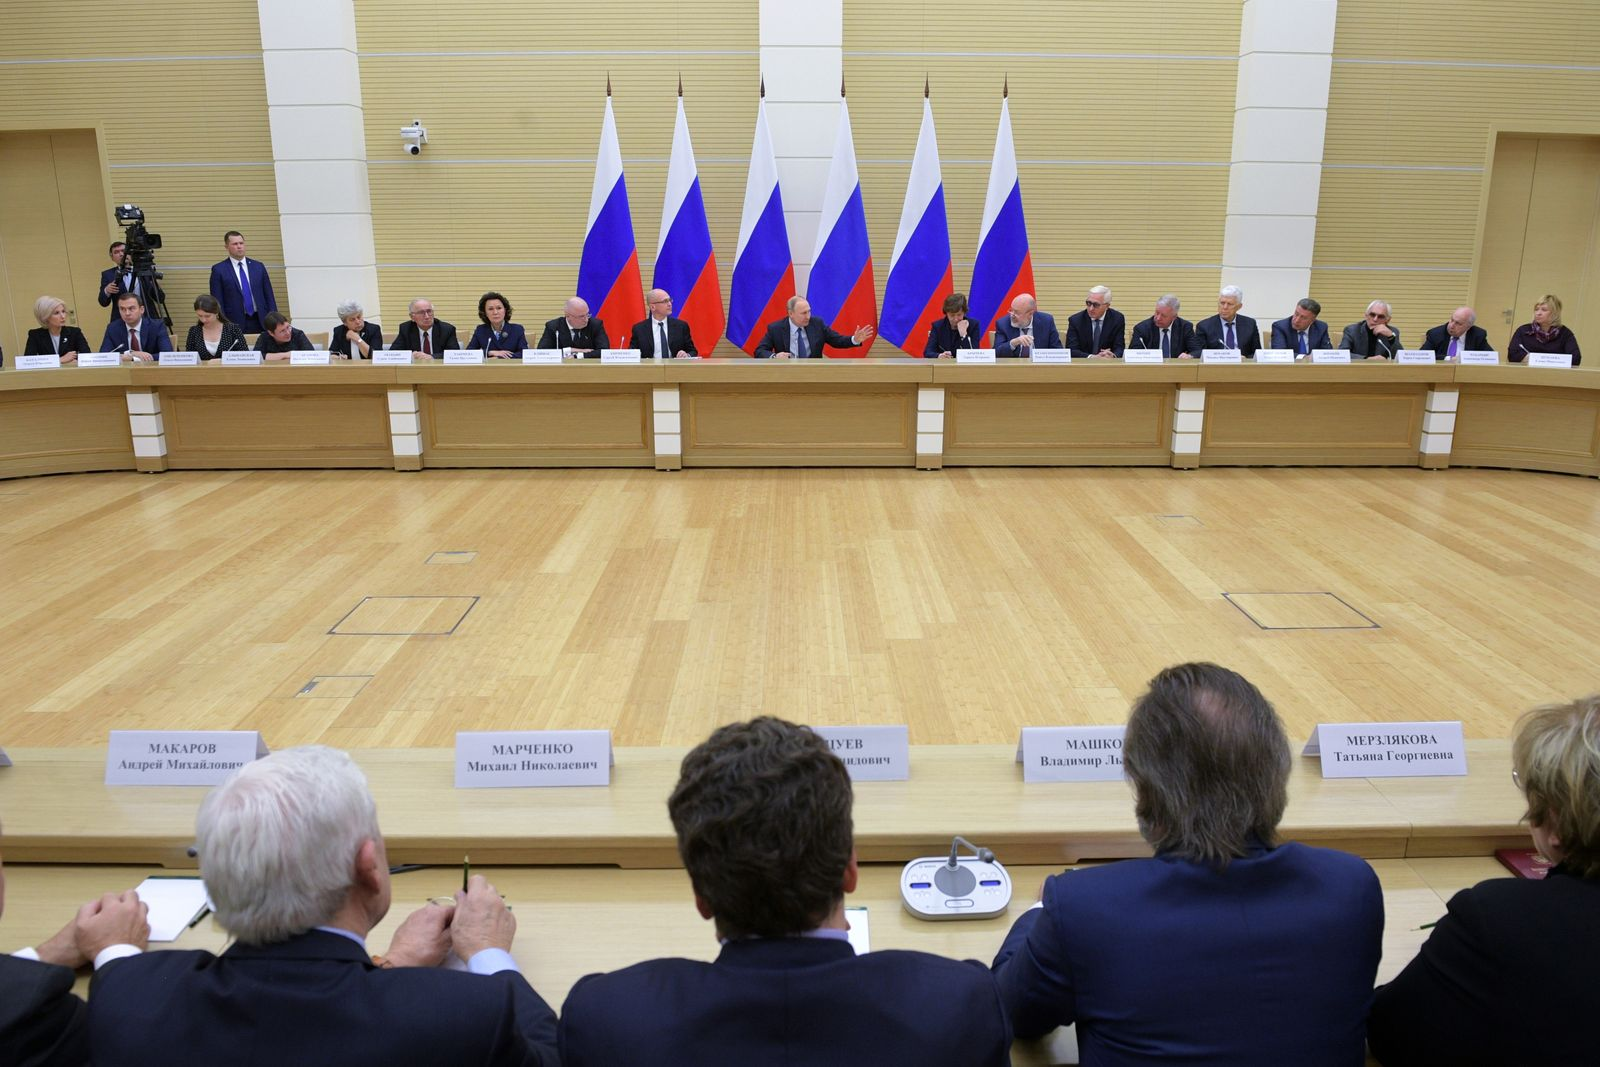 Russian President VladimirPutin chairs a meeting on proposals for amendments to the Russian Constitution at the Novo-Ogaryovo state residence